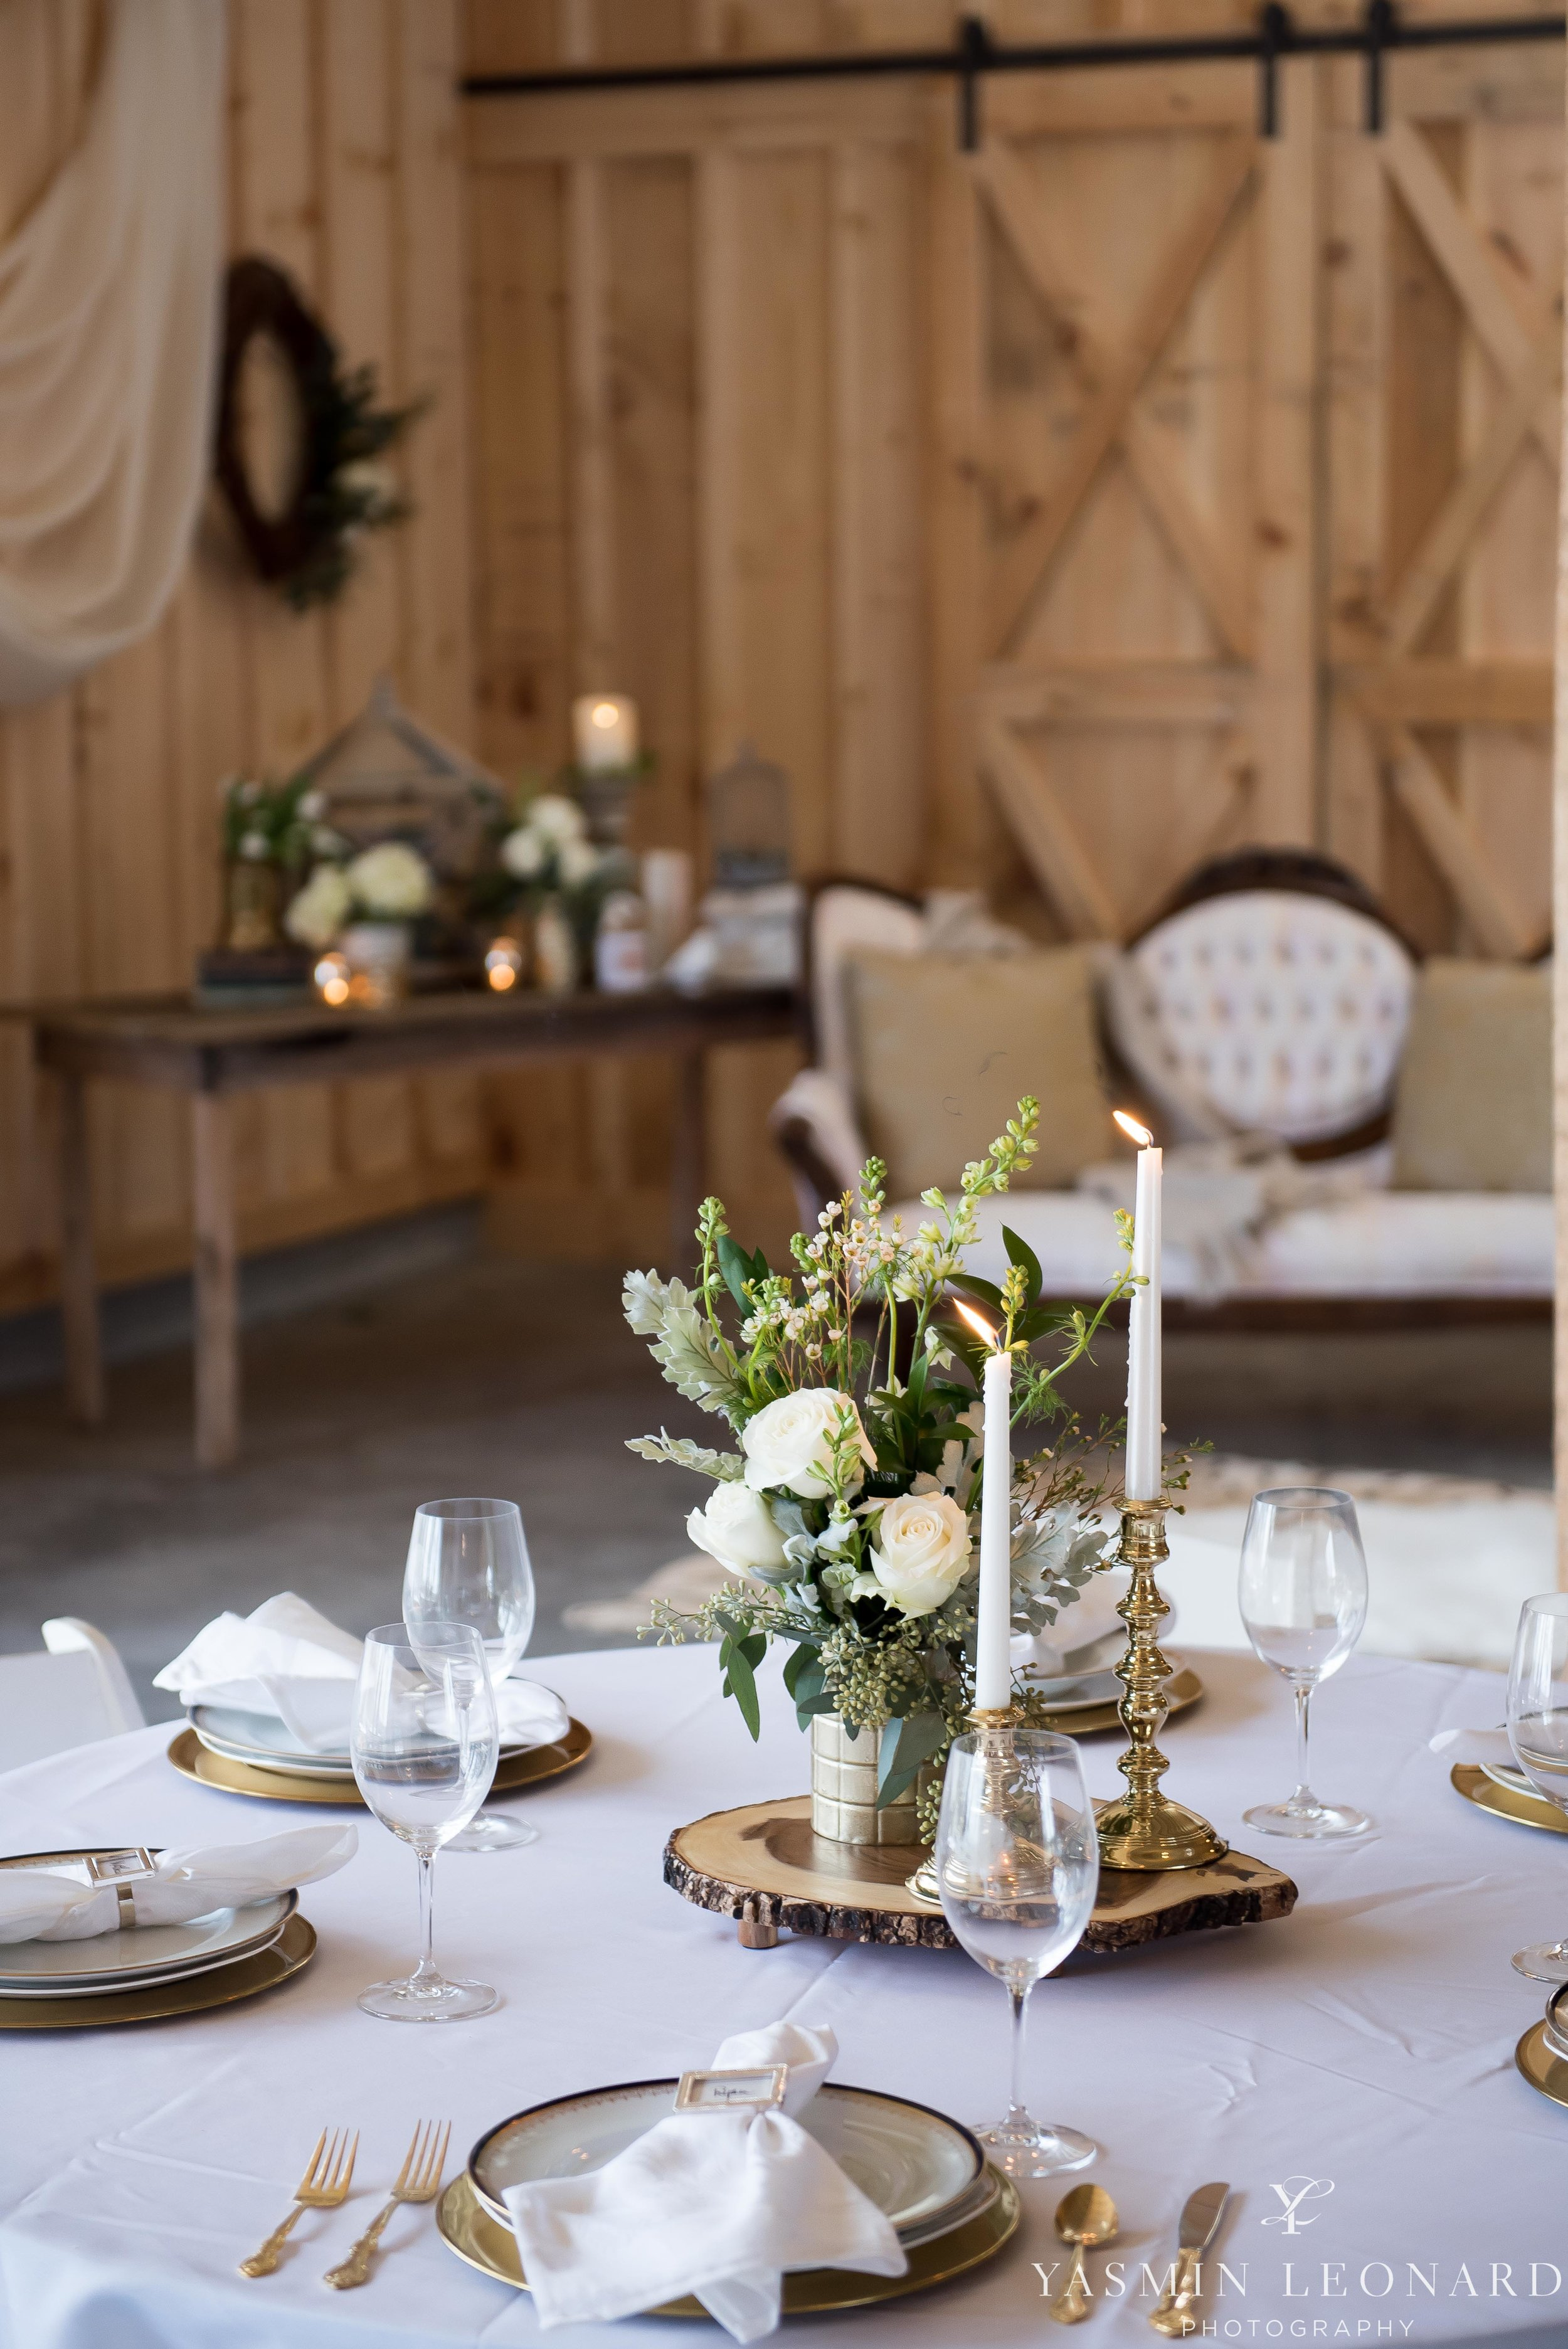 Old Homeplace Vineyard - Grits and Glitter - Dashing Dames Bridal Boutique - Just Priceless - Yasmin Leonard Photography - High Point Weddings - NC Weddings - NC Wedding Venues - High Point Jewelers - NC Wines - NC Vineyards - Cupcake Cuties-14.jpg